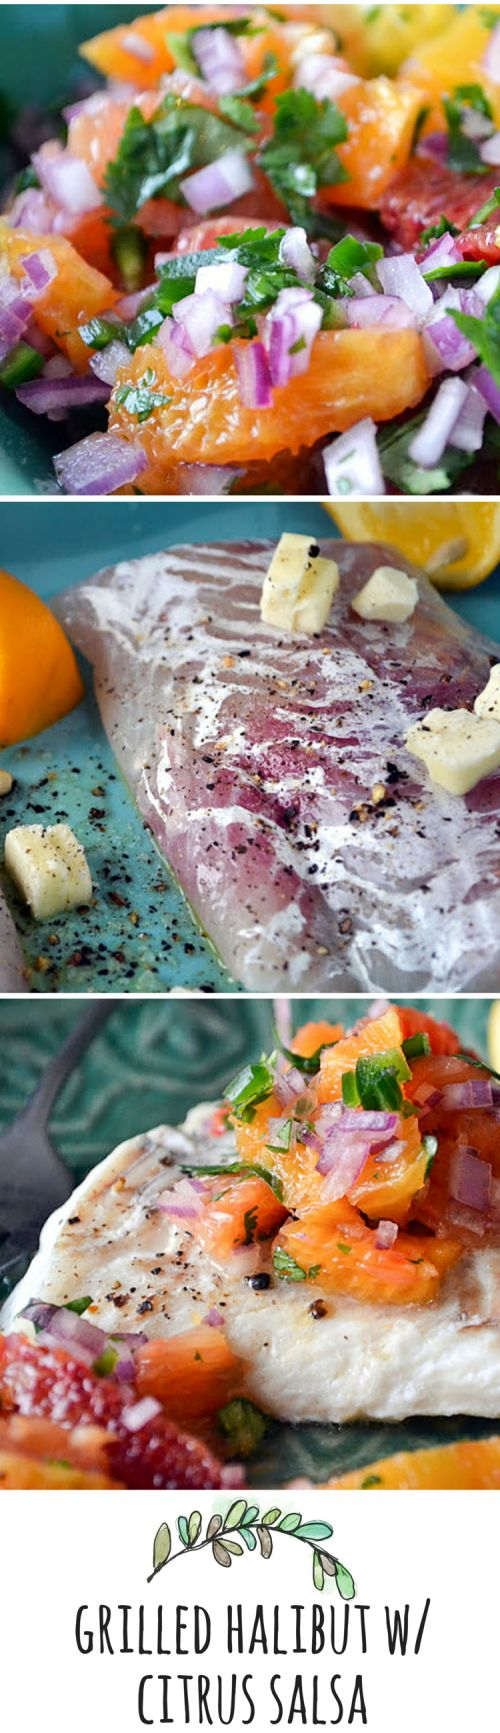 Grilled Halibut with Citrus Salsa ~ if there were ever a dish that had my name written all over it, it's this one. I could eat this every day for the rest of my life ~ it's gluten free, low calorie, paleo, and Whole 30!